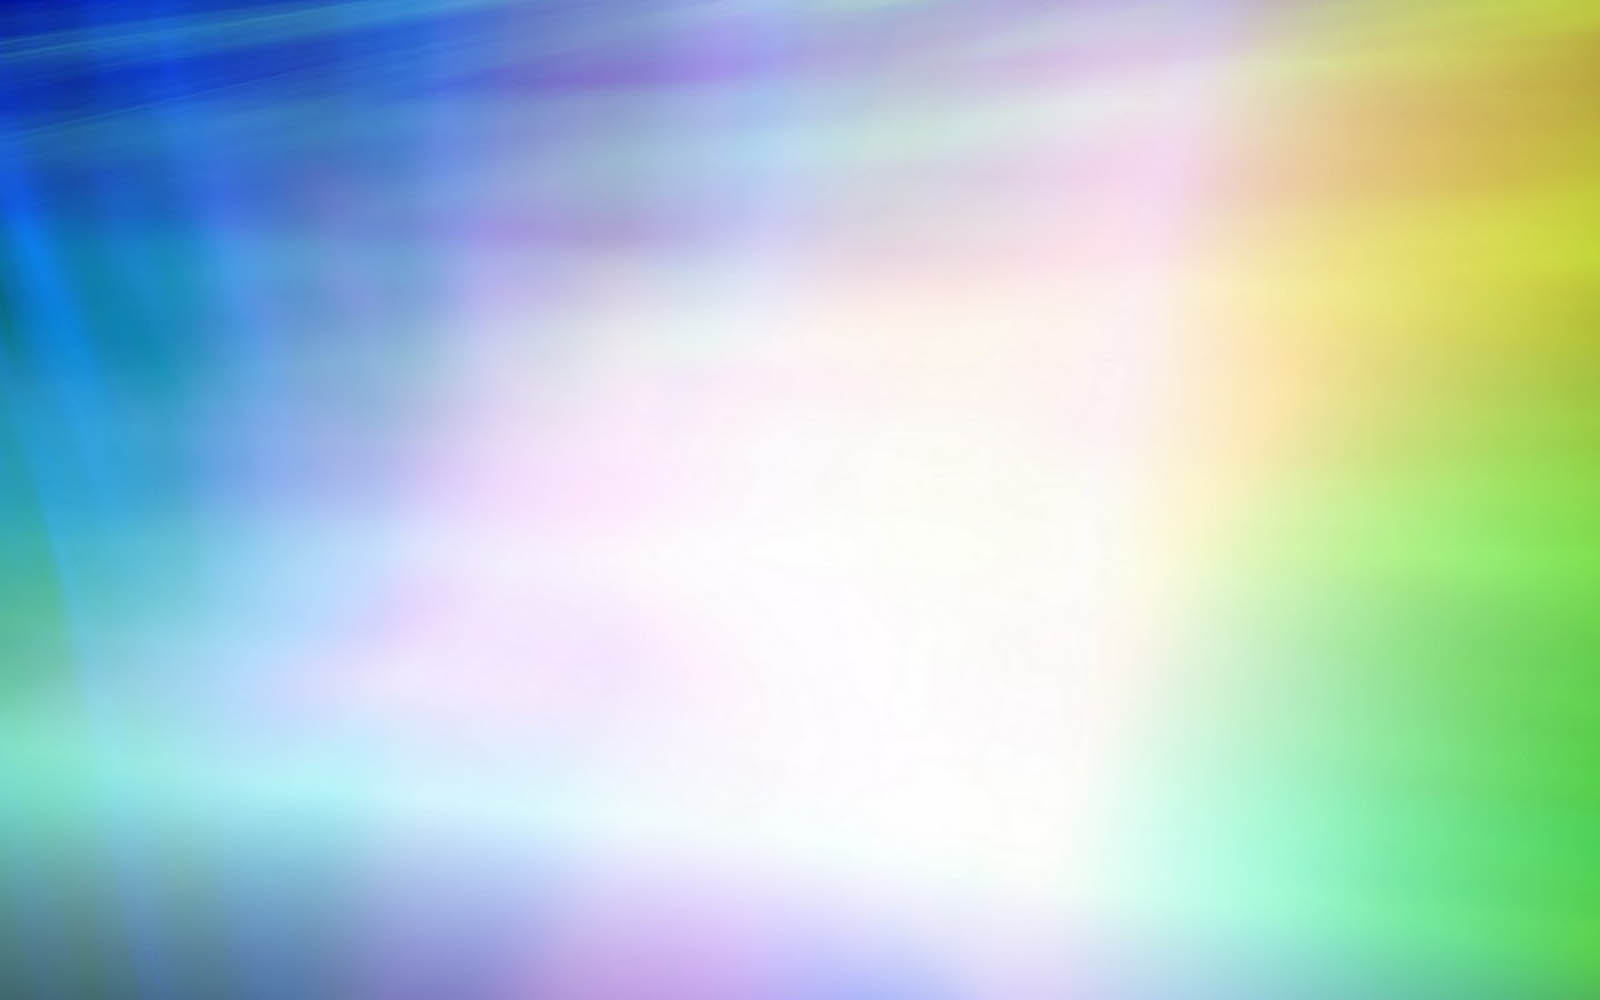 wallpapers: Colorful Wallpapers